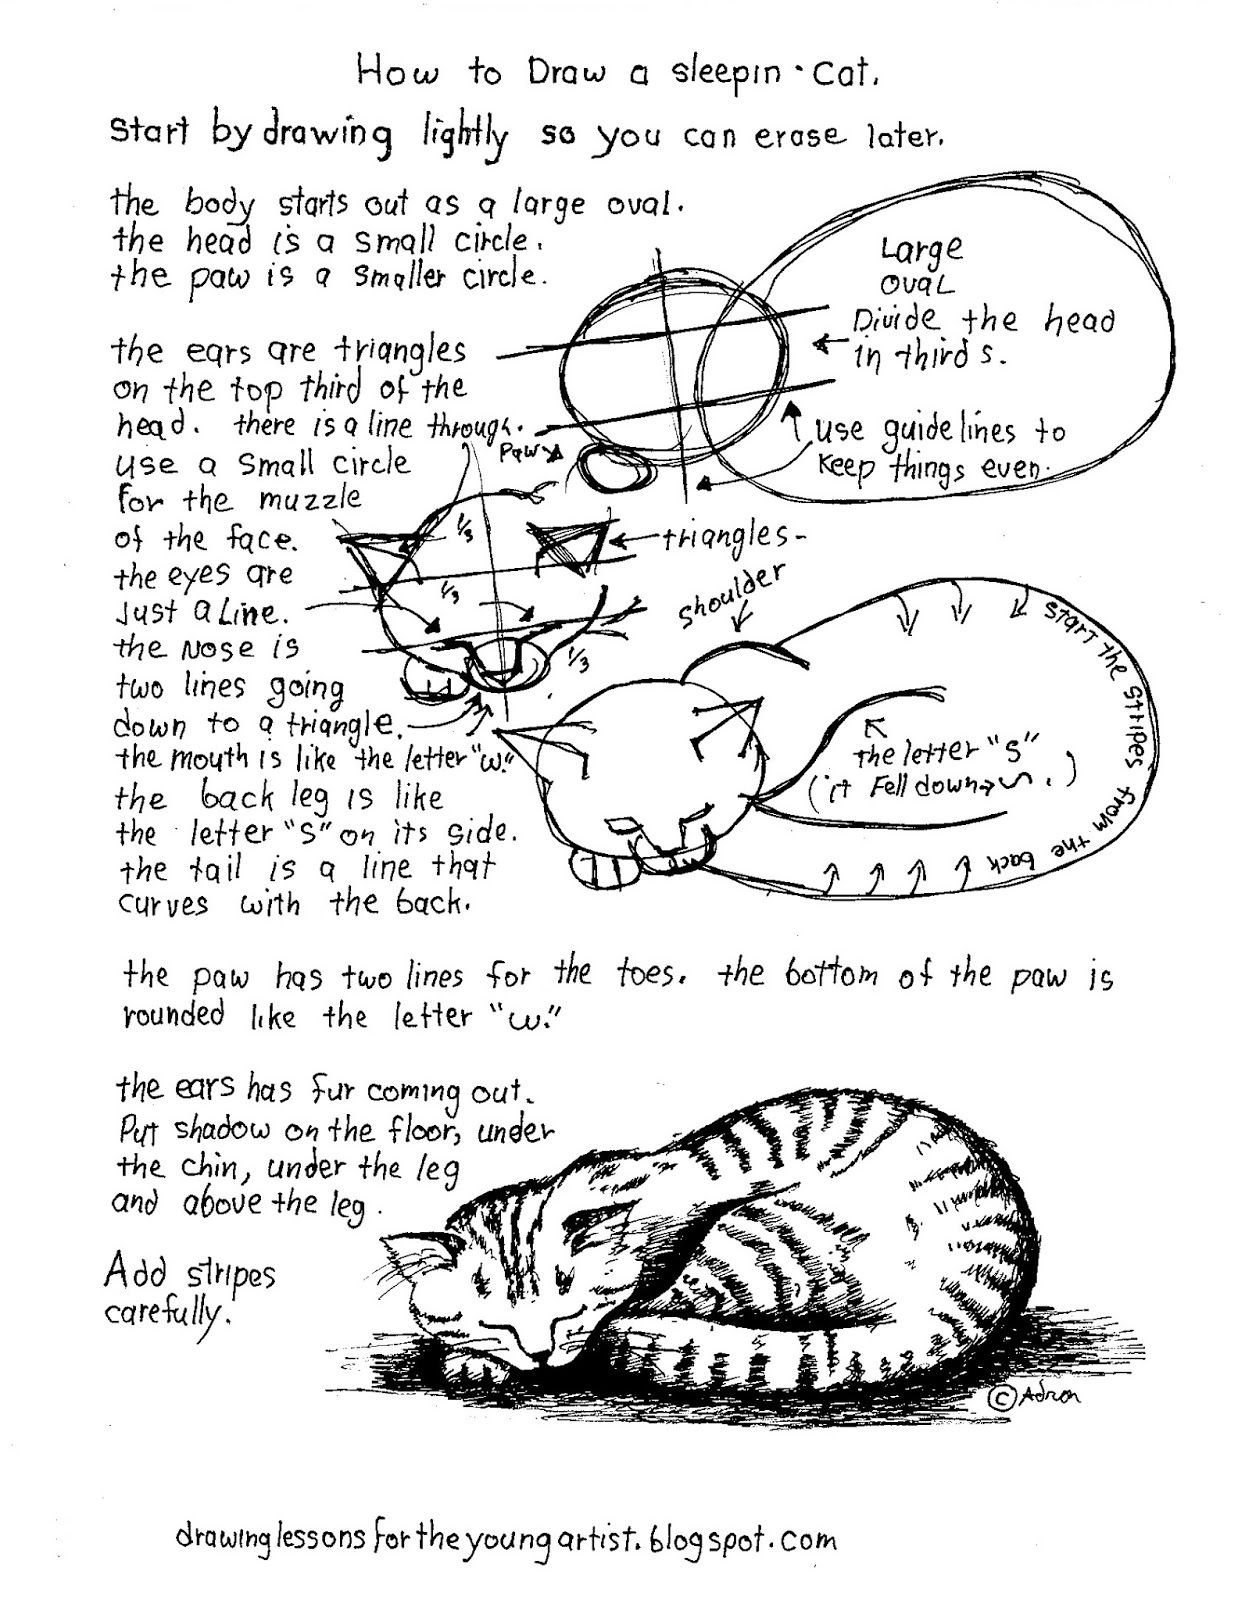 worksheet Drawing Worksheets how to draw worksheets for the young artist a sleeping cat